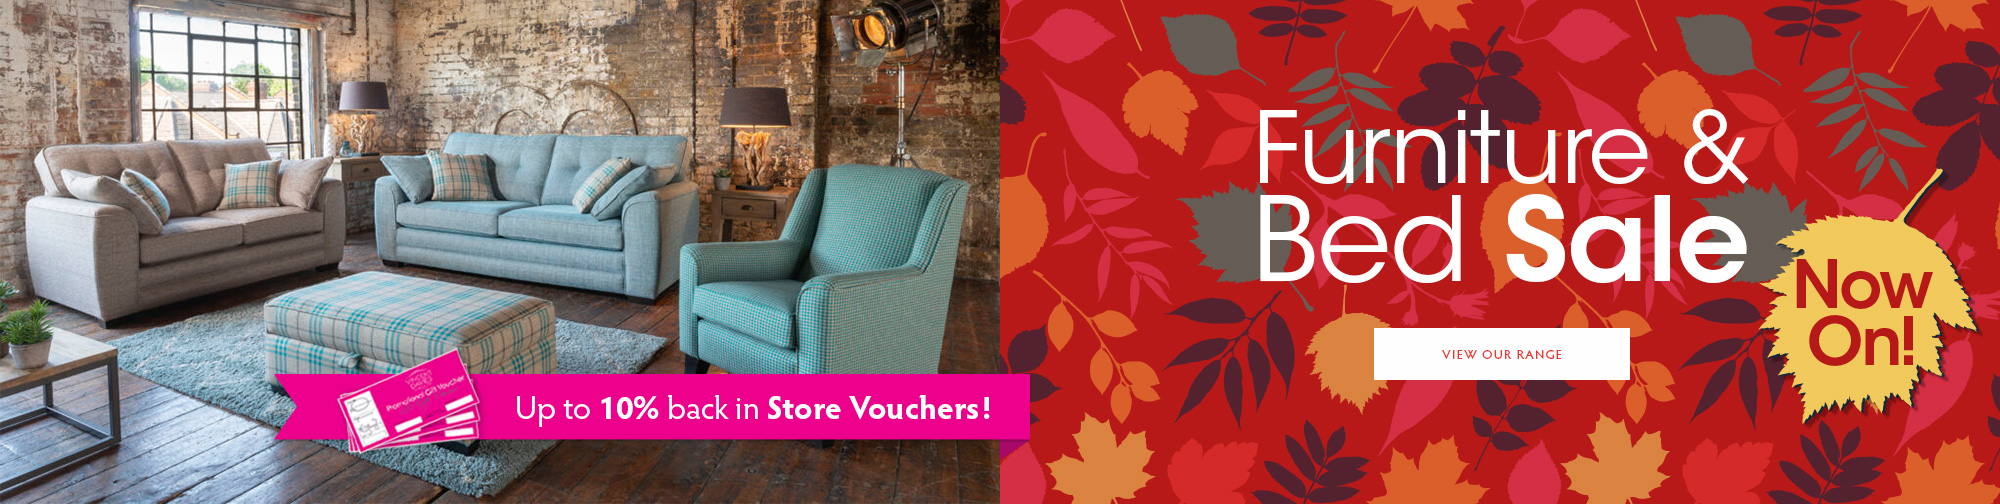 Autumn Furniture & Bed Sale 2019 – Now On